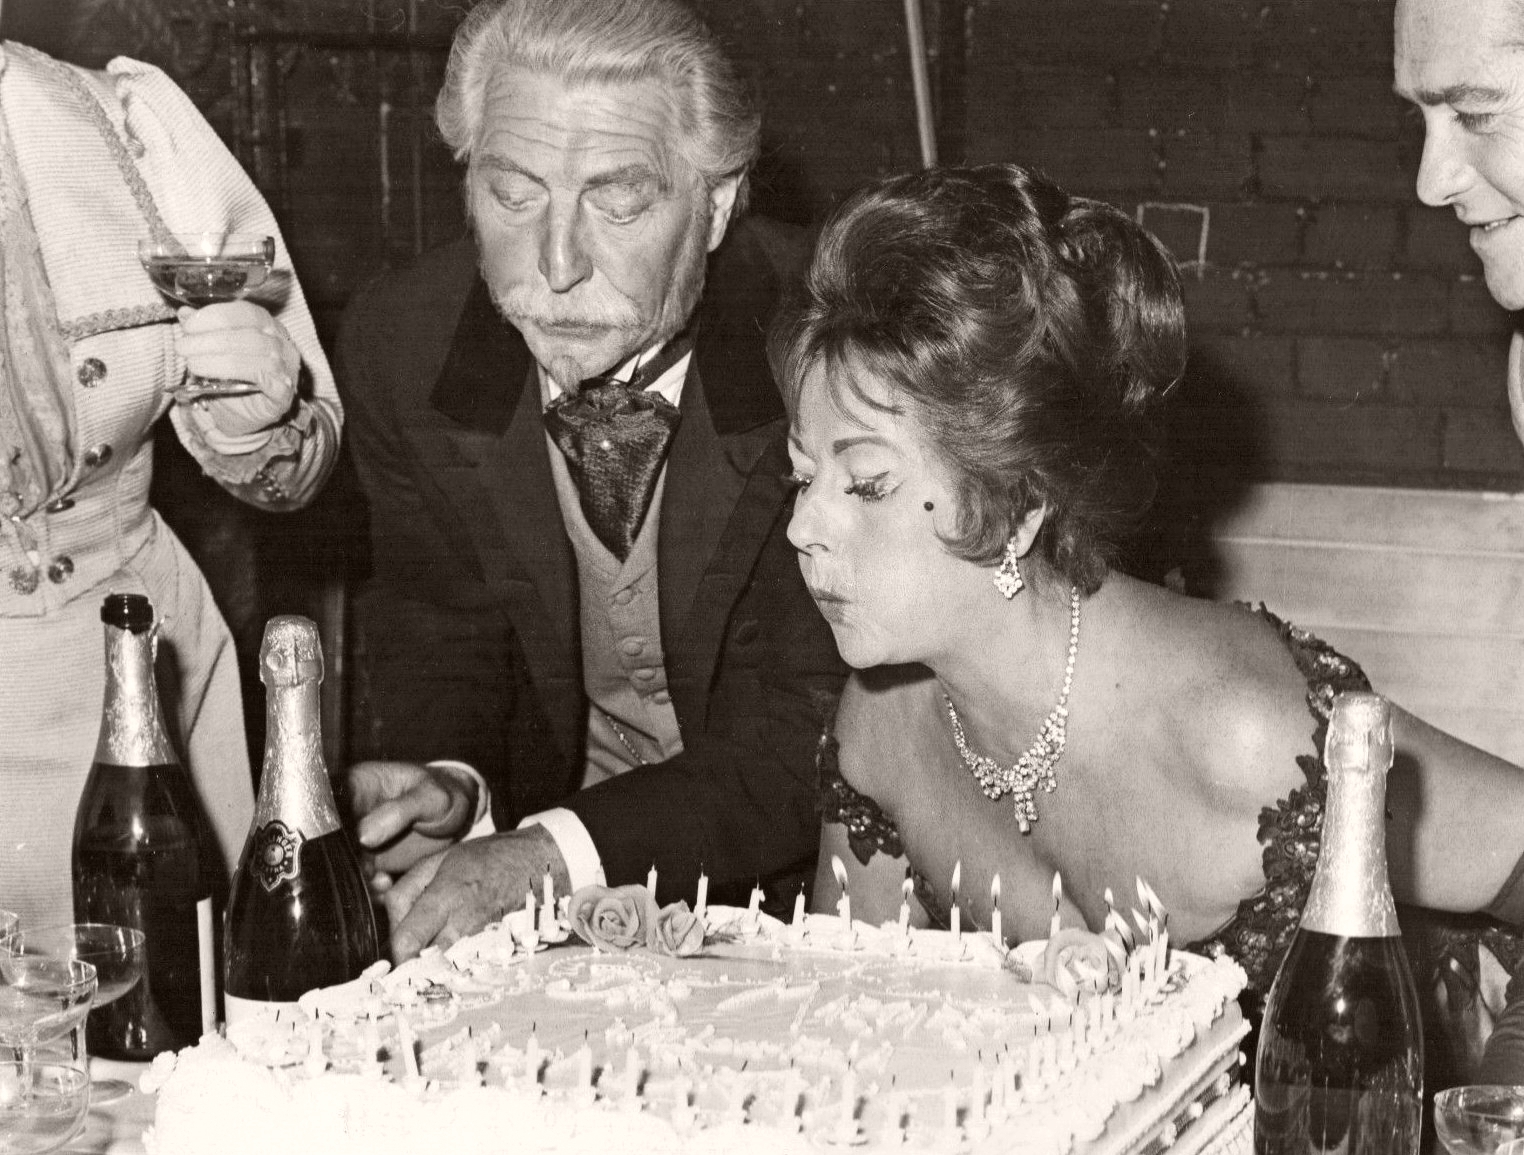 Veteran British film and stage star Margaret Lockwood blows out fifty candles on her birthday cake as her co-star in the play, An Ideal Husband, Roger Livesey, looks on